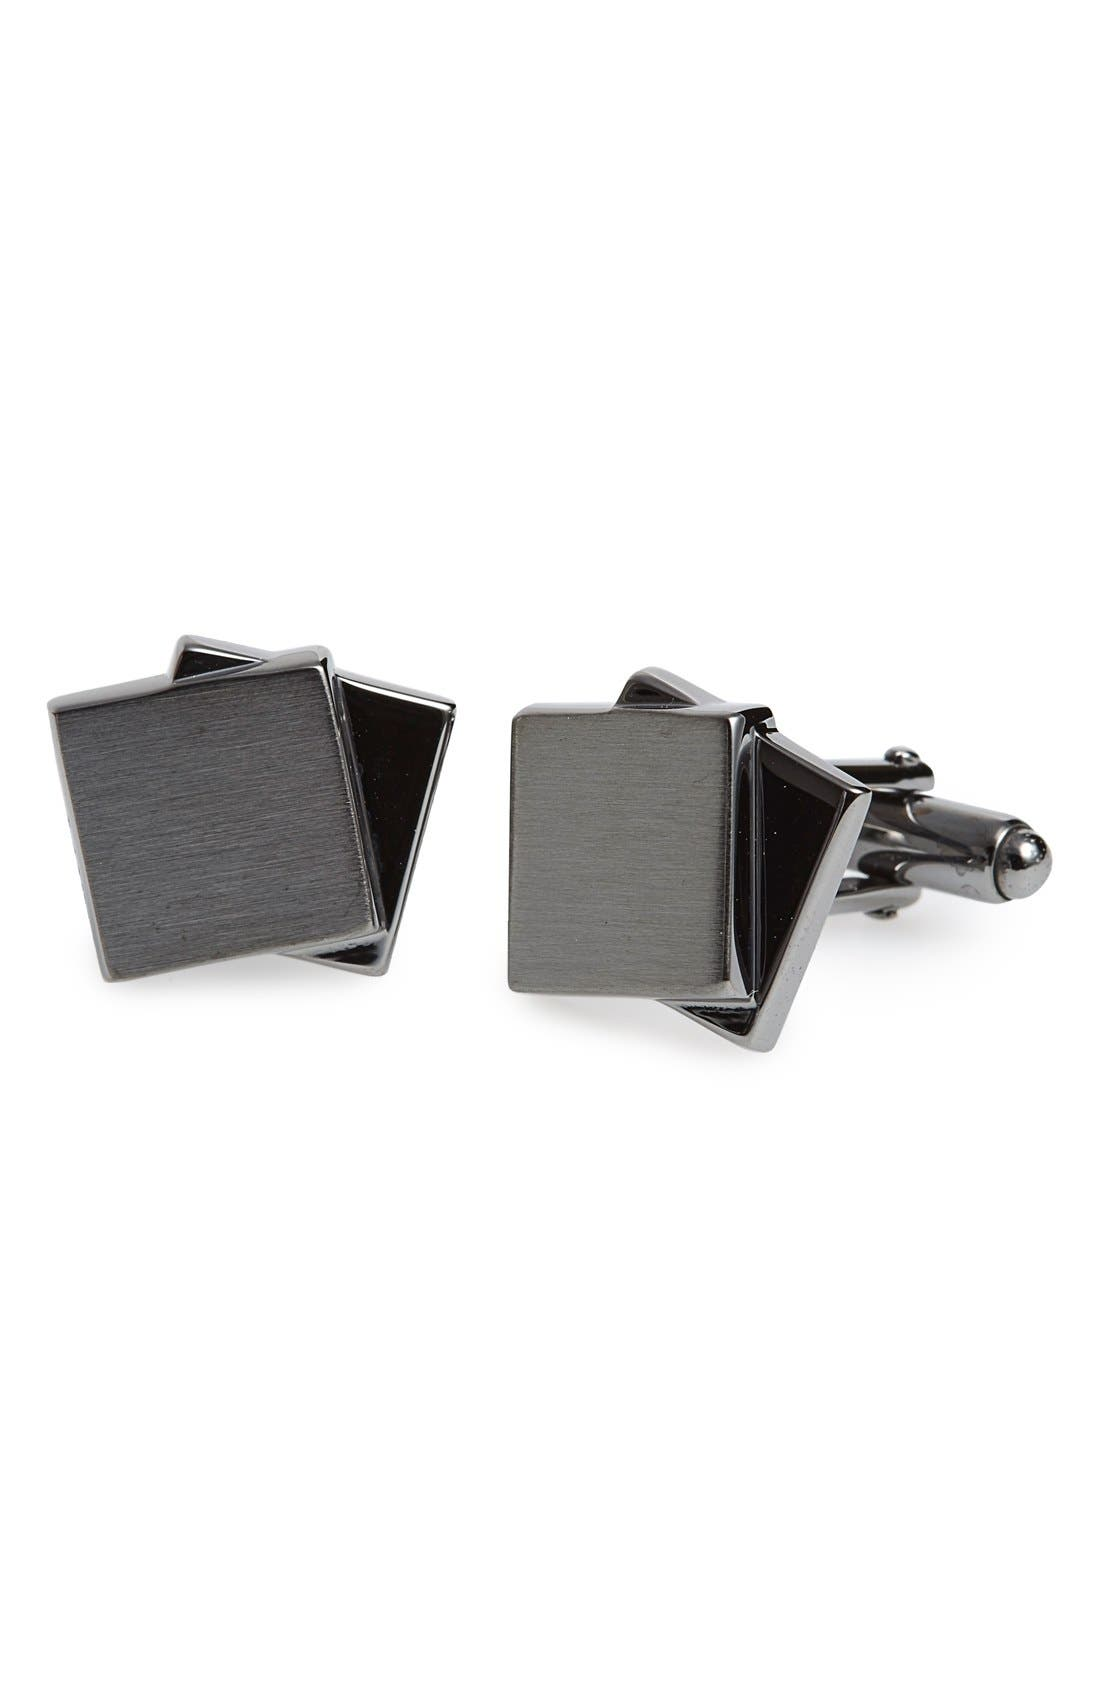 Main Image - Lanvin Dual Plaques Cuff Links